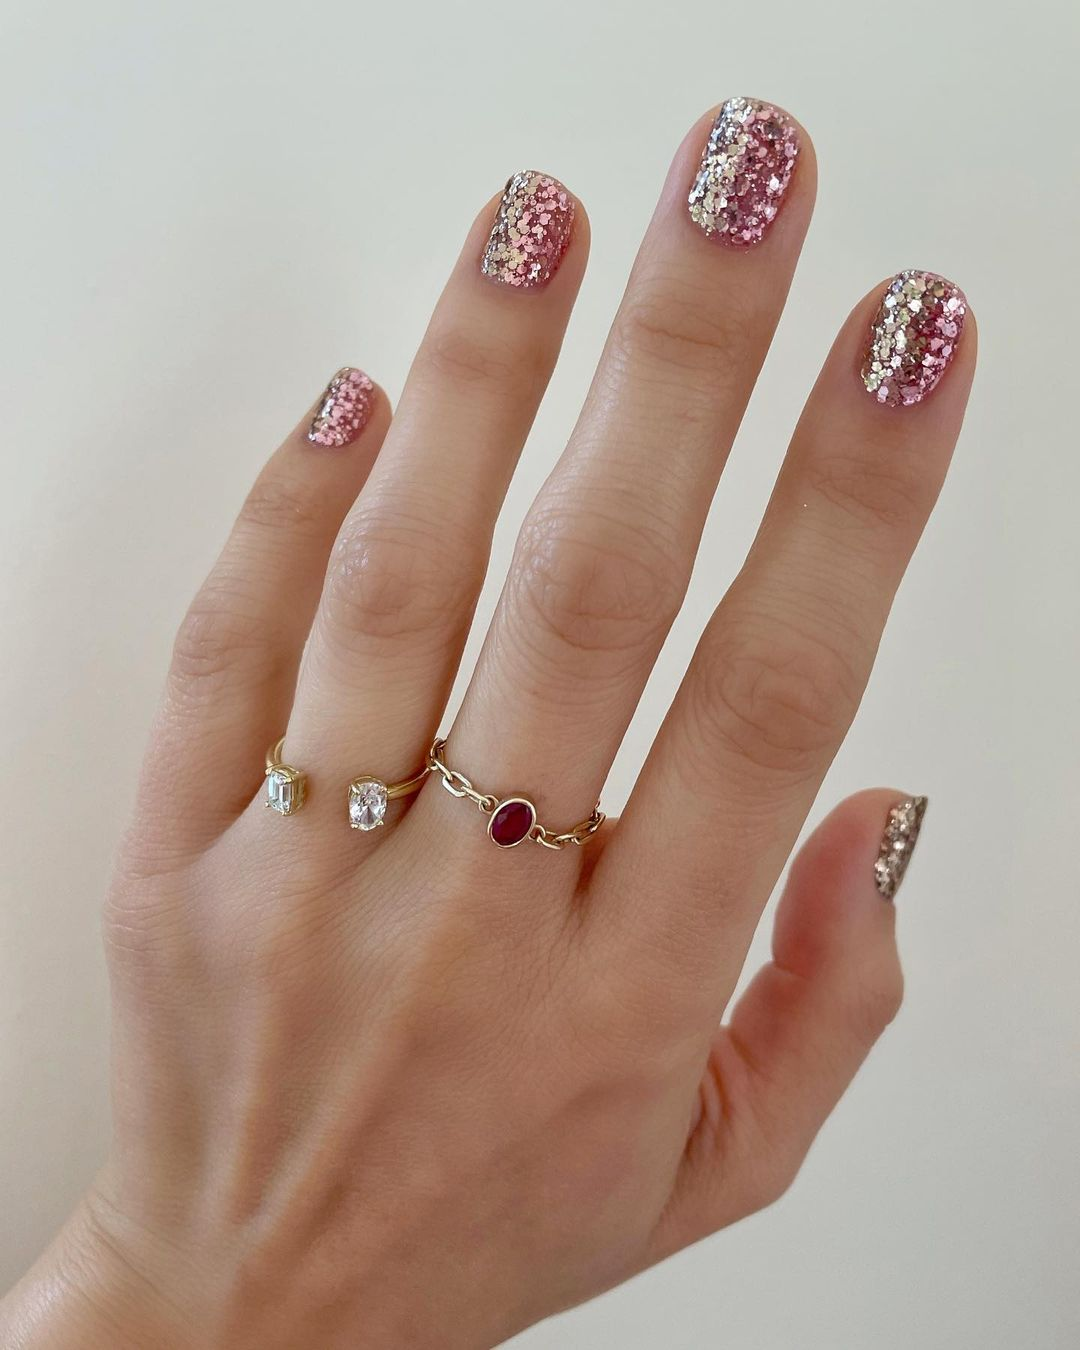 Short rose gold glitter nails for New Years Eve